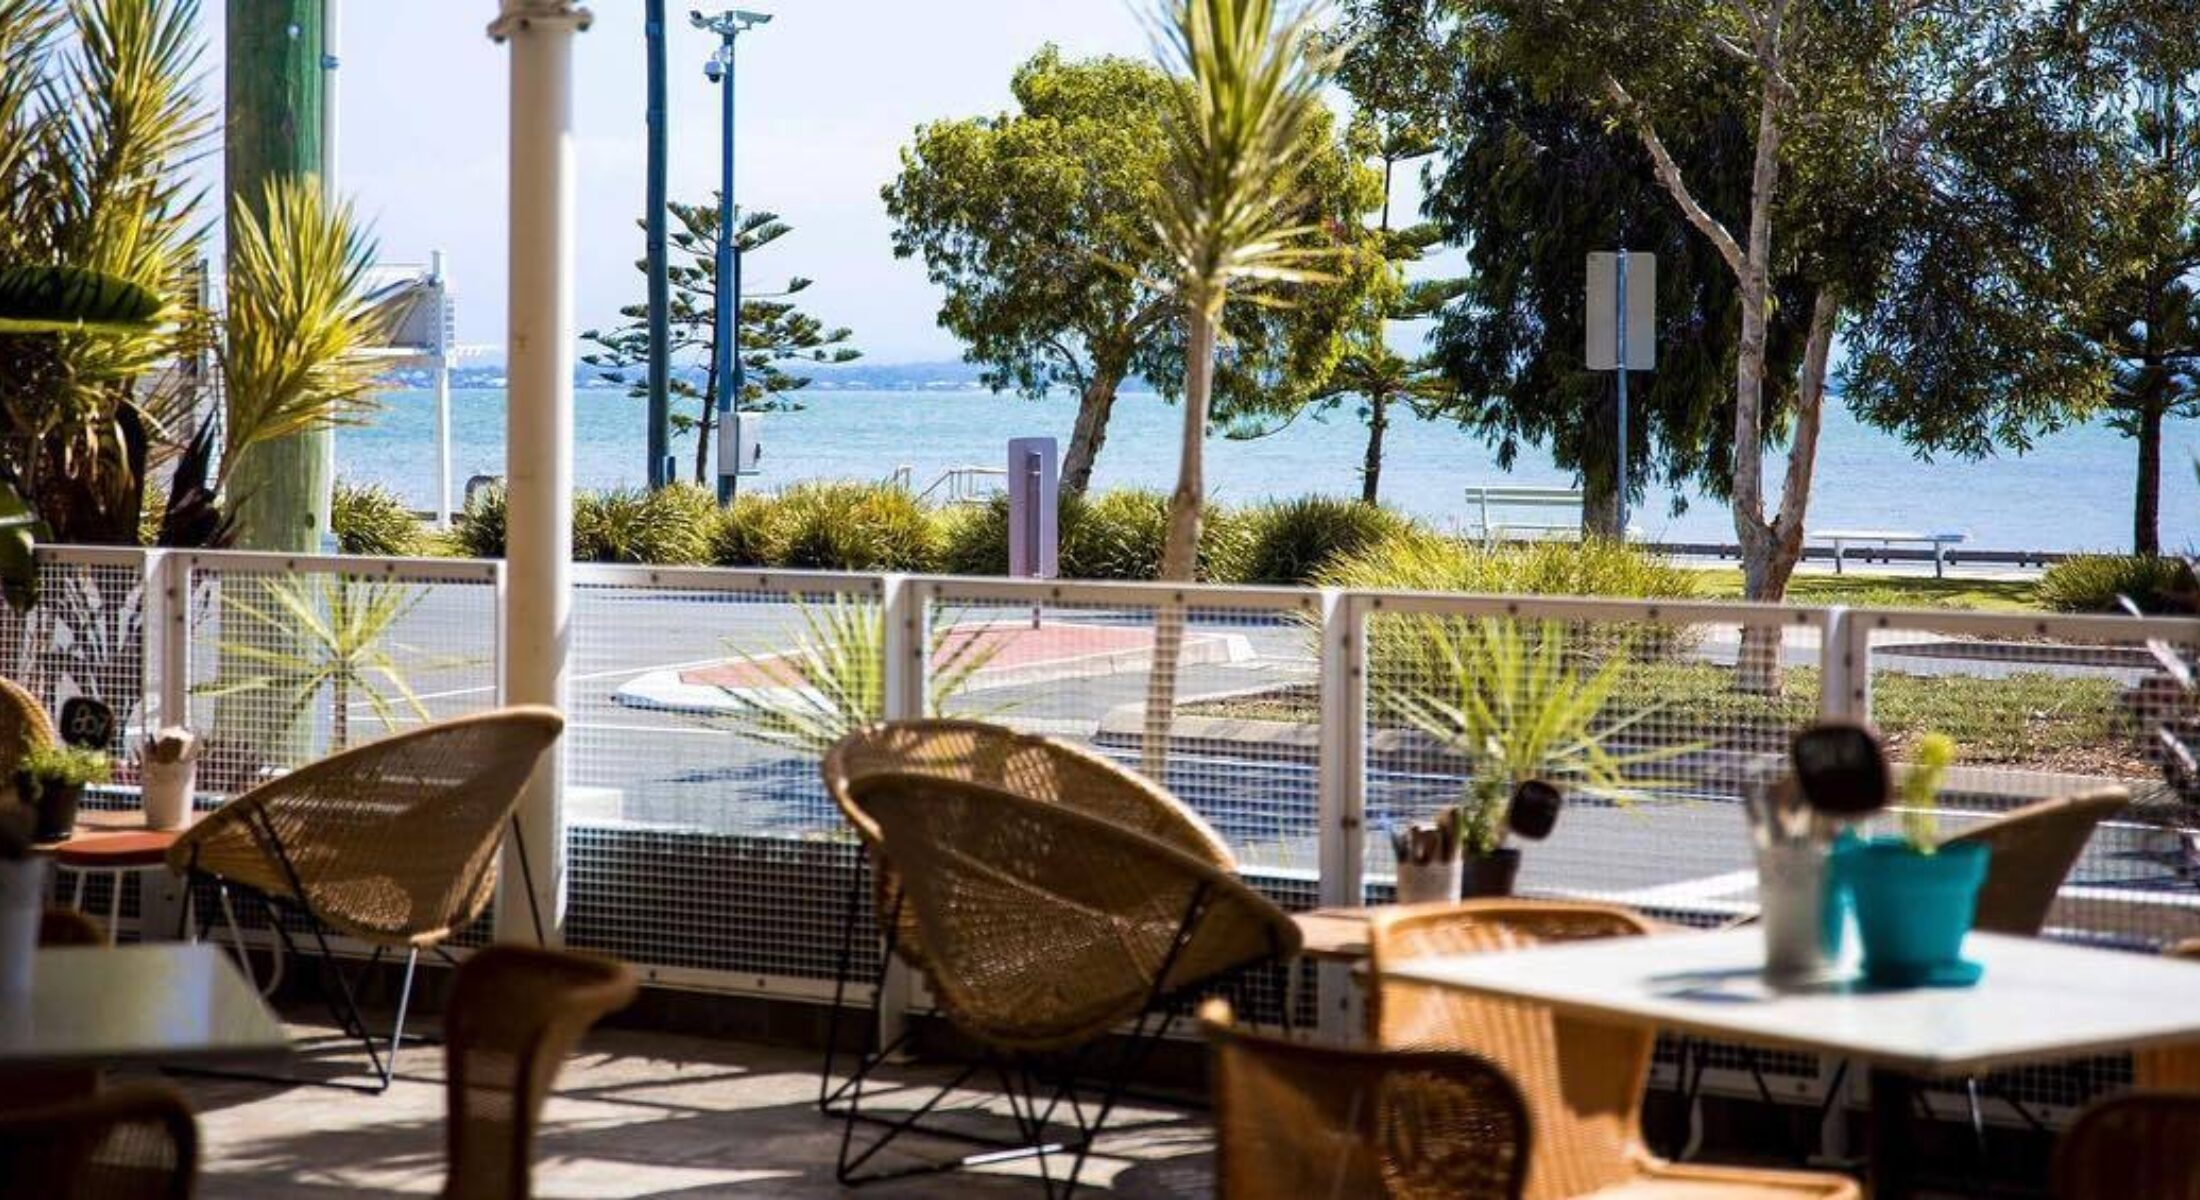 The Belvedere Redcliffe best eats near Brisbane with view Moreton Bay Region